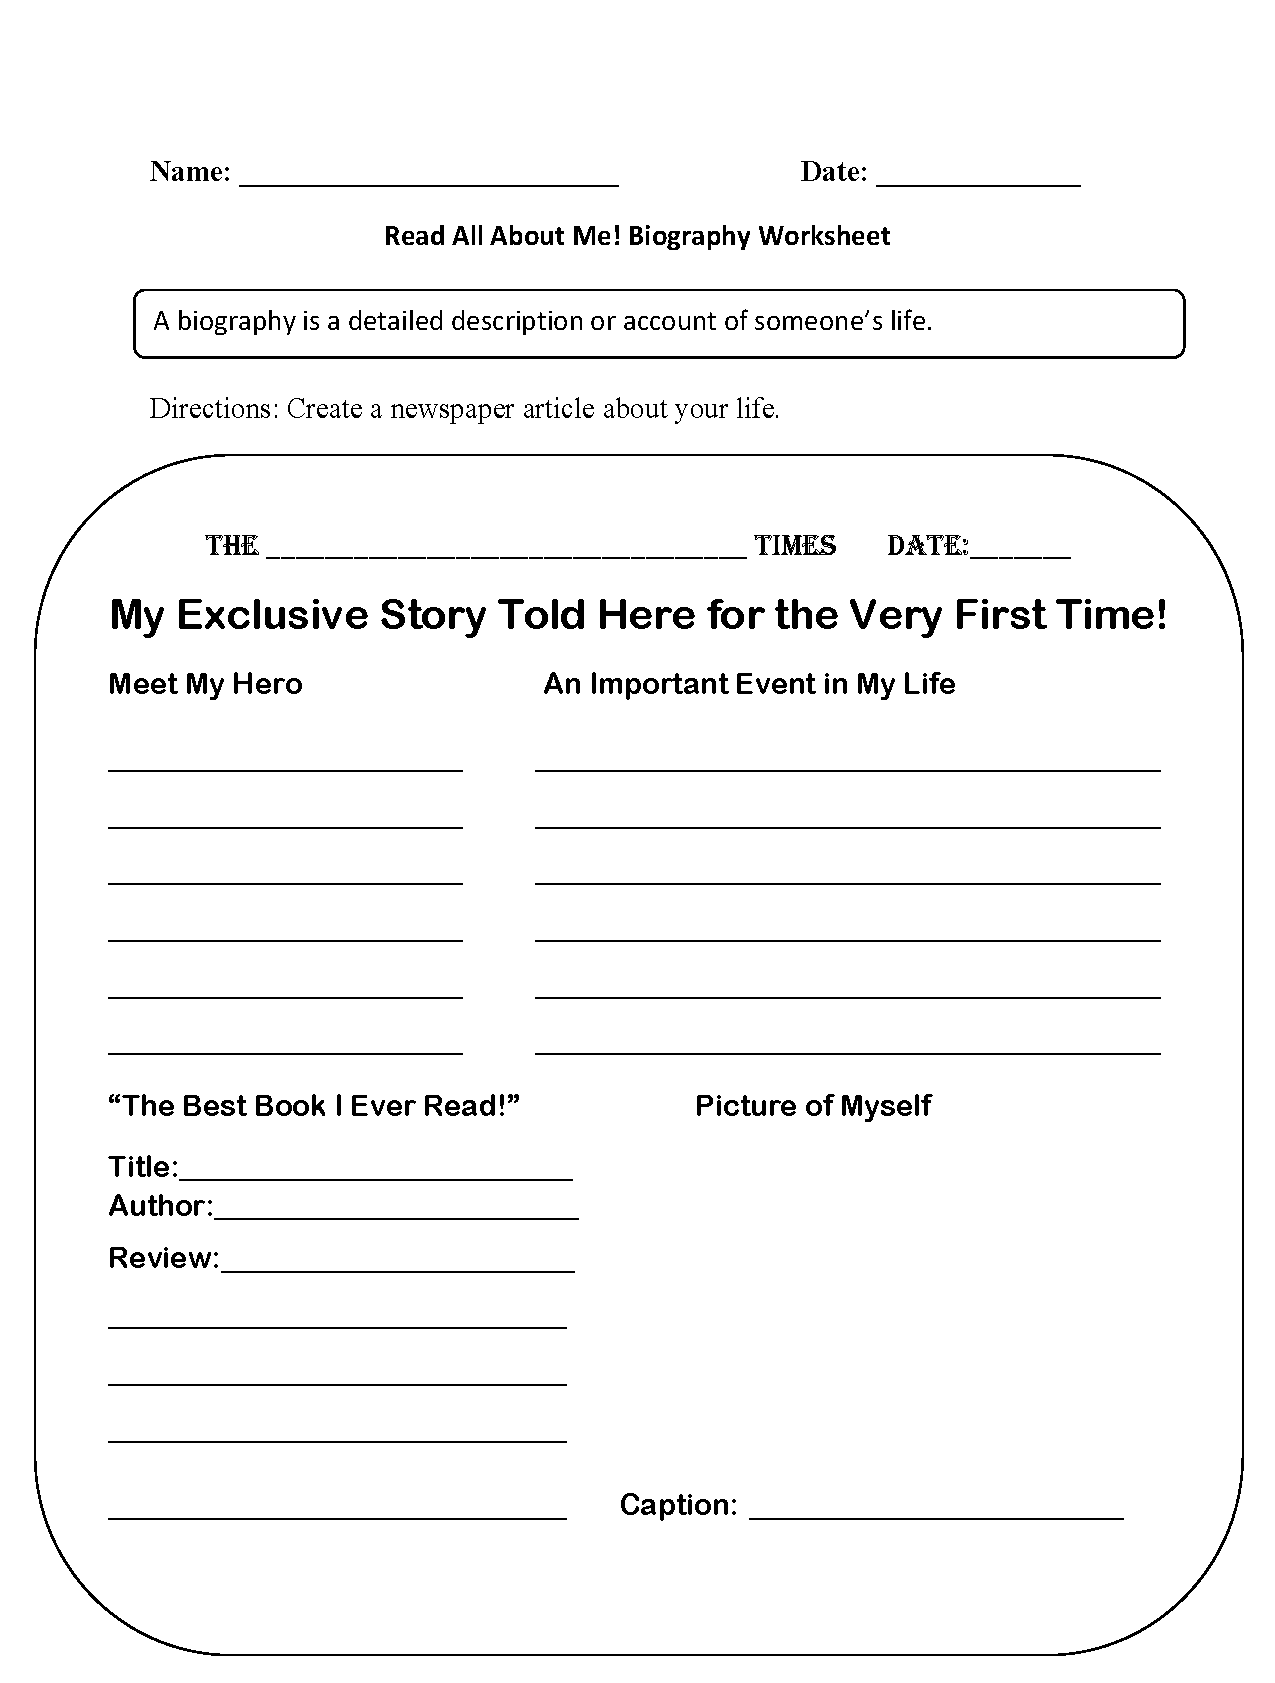 Read All About Me Back to School Worksheets   School worksheets [ 1683 x 1275 Pixel ]